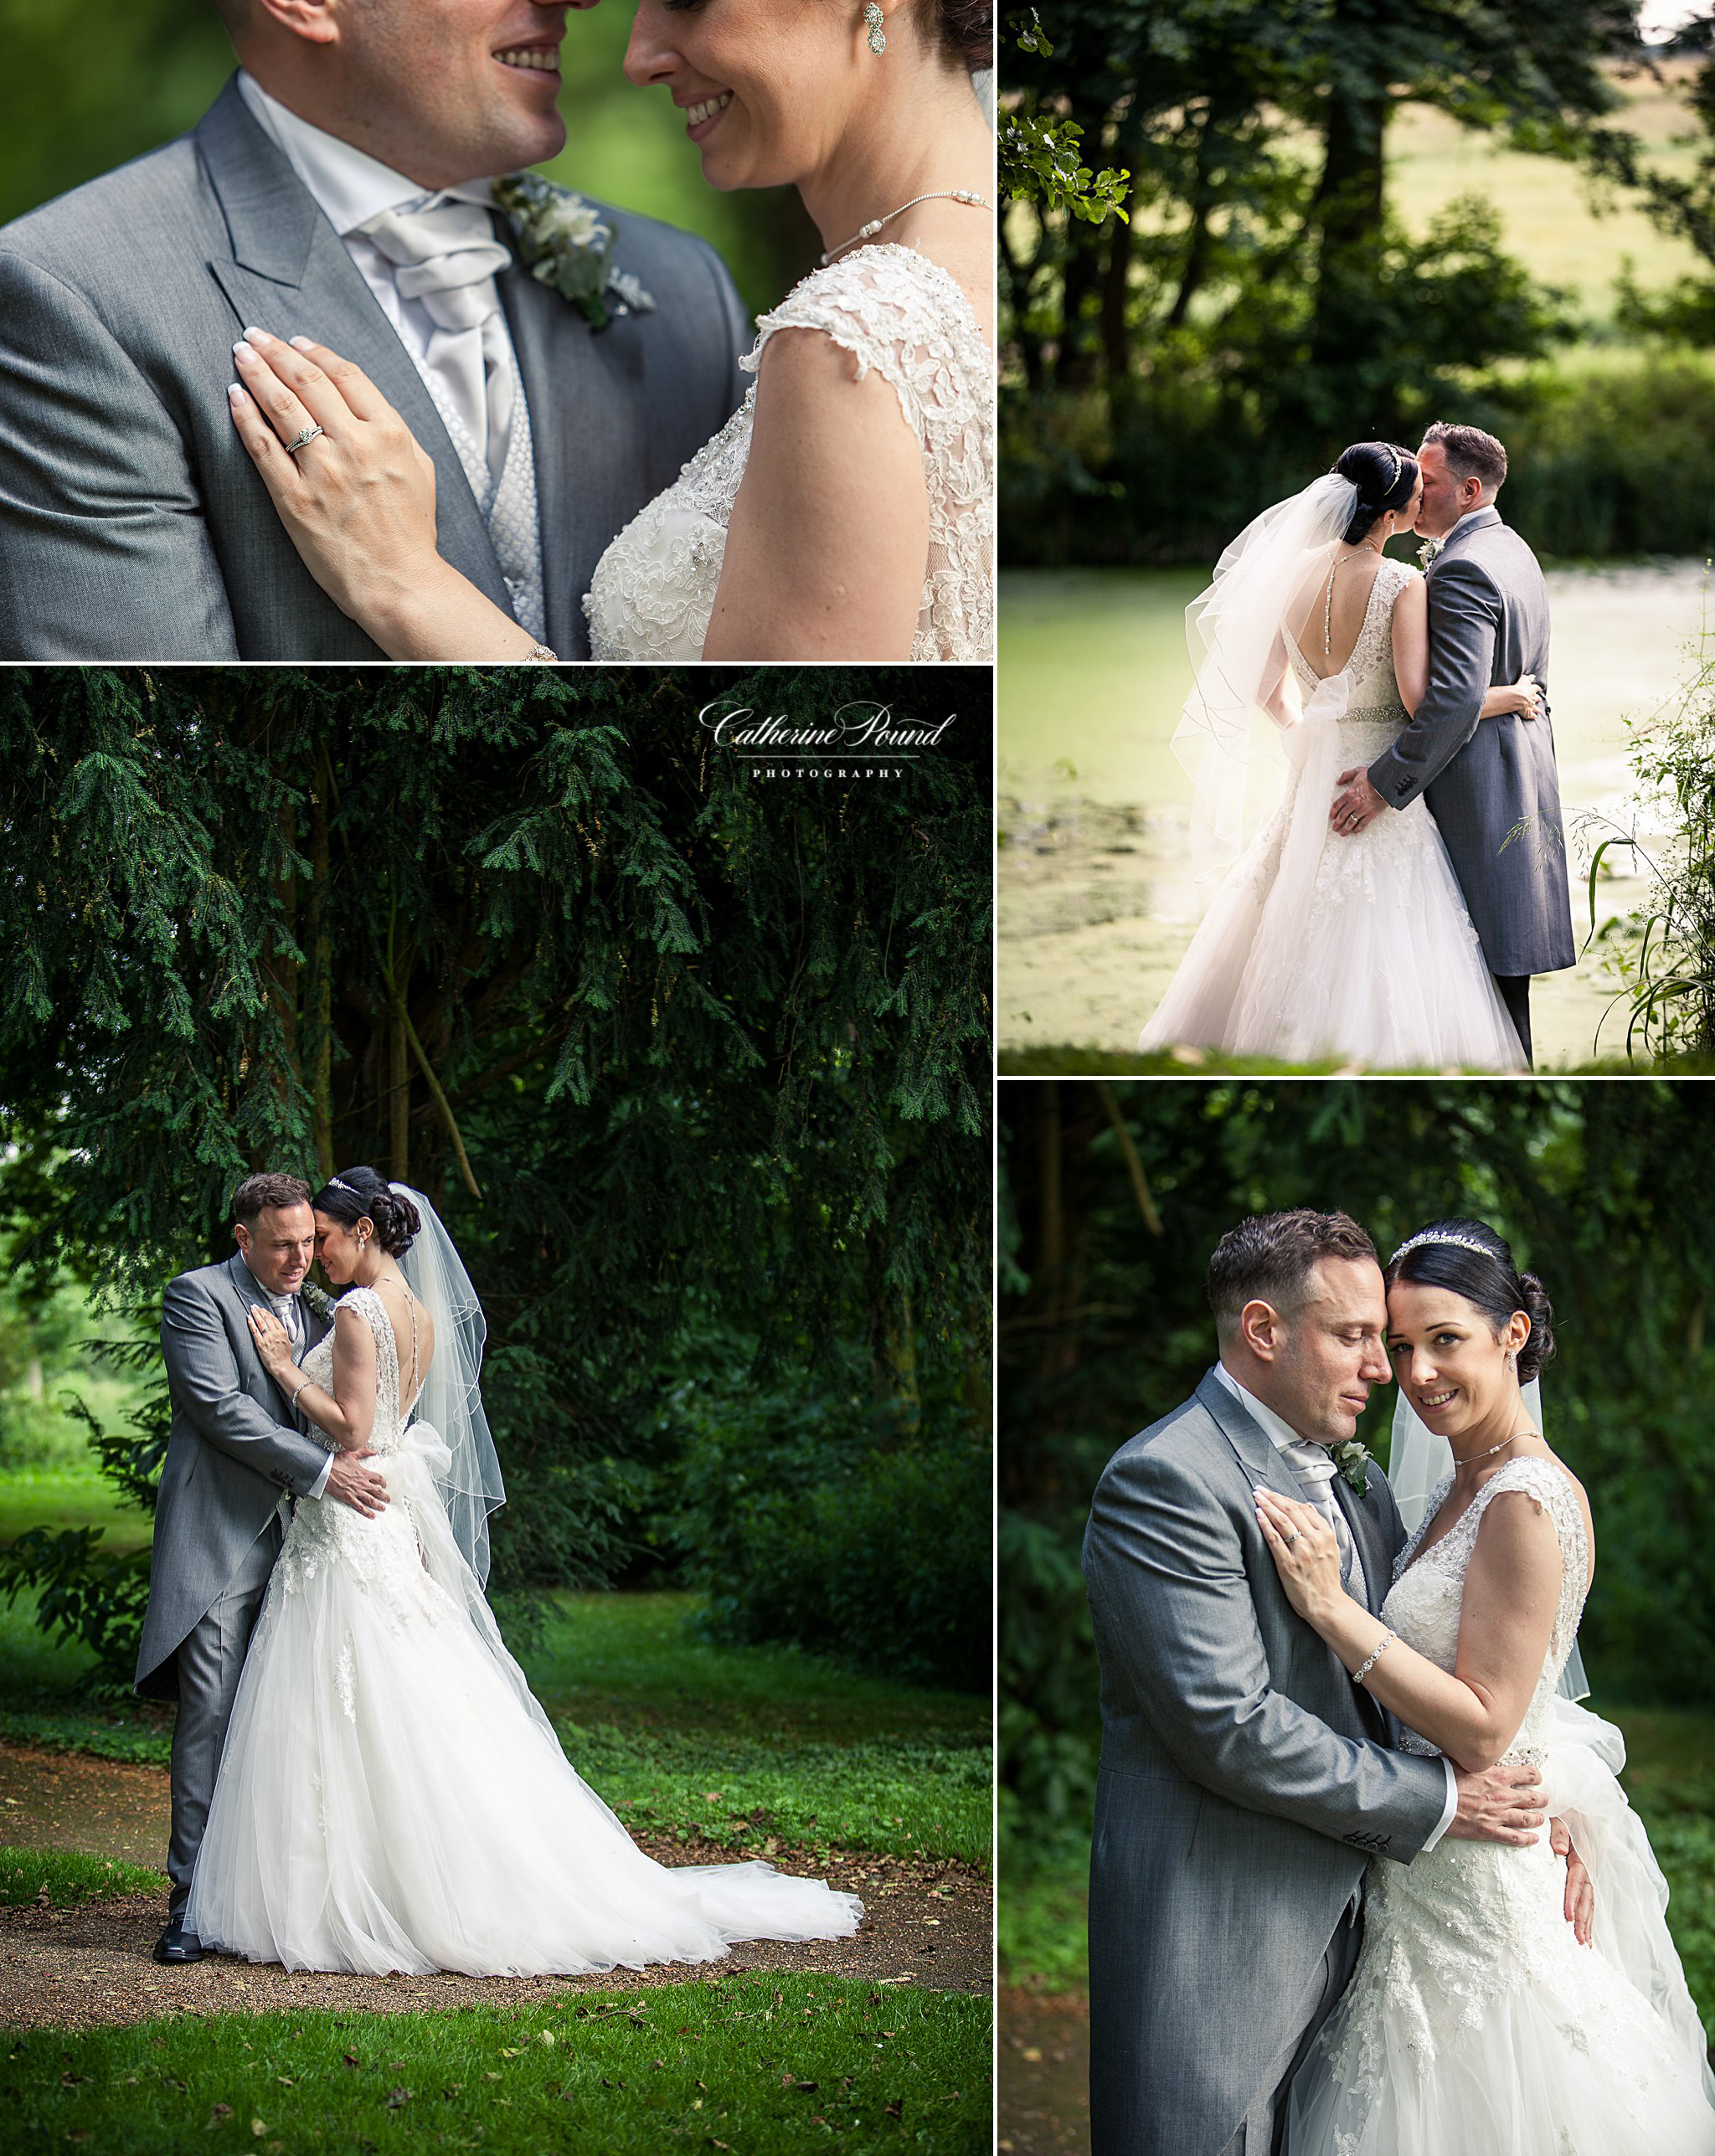 Bridal portraits at Rushton Hall